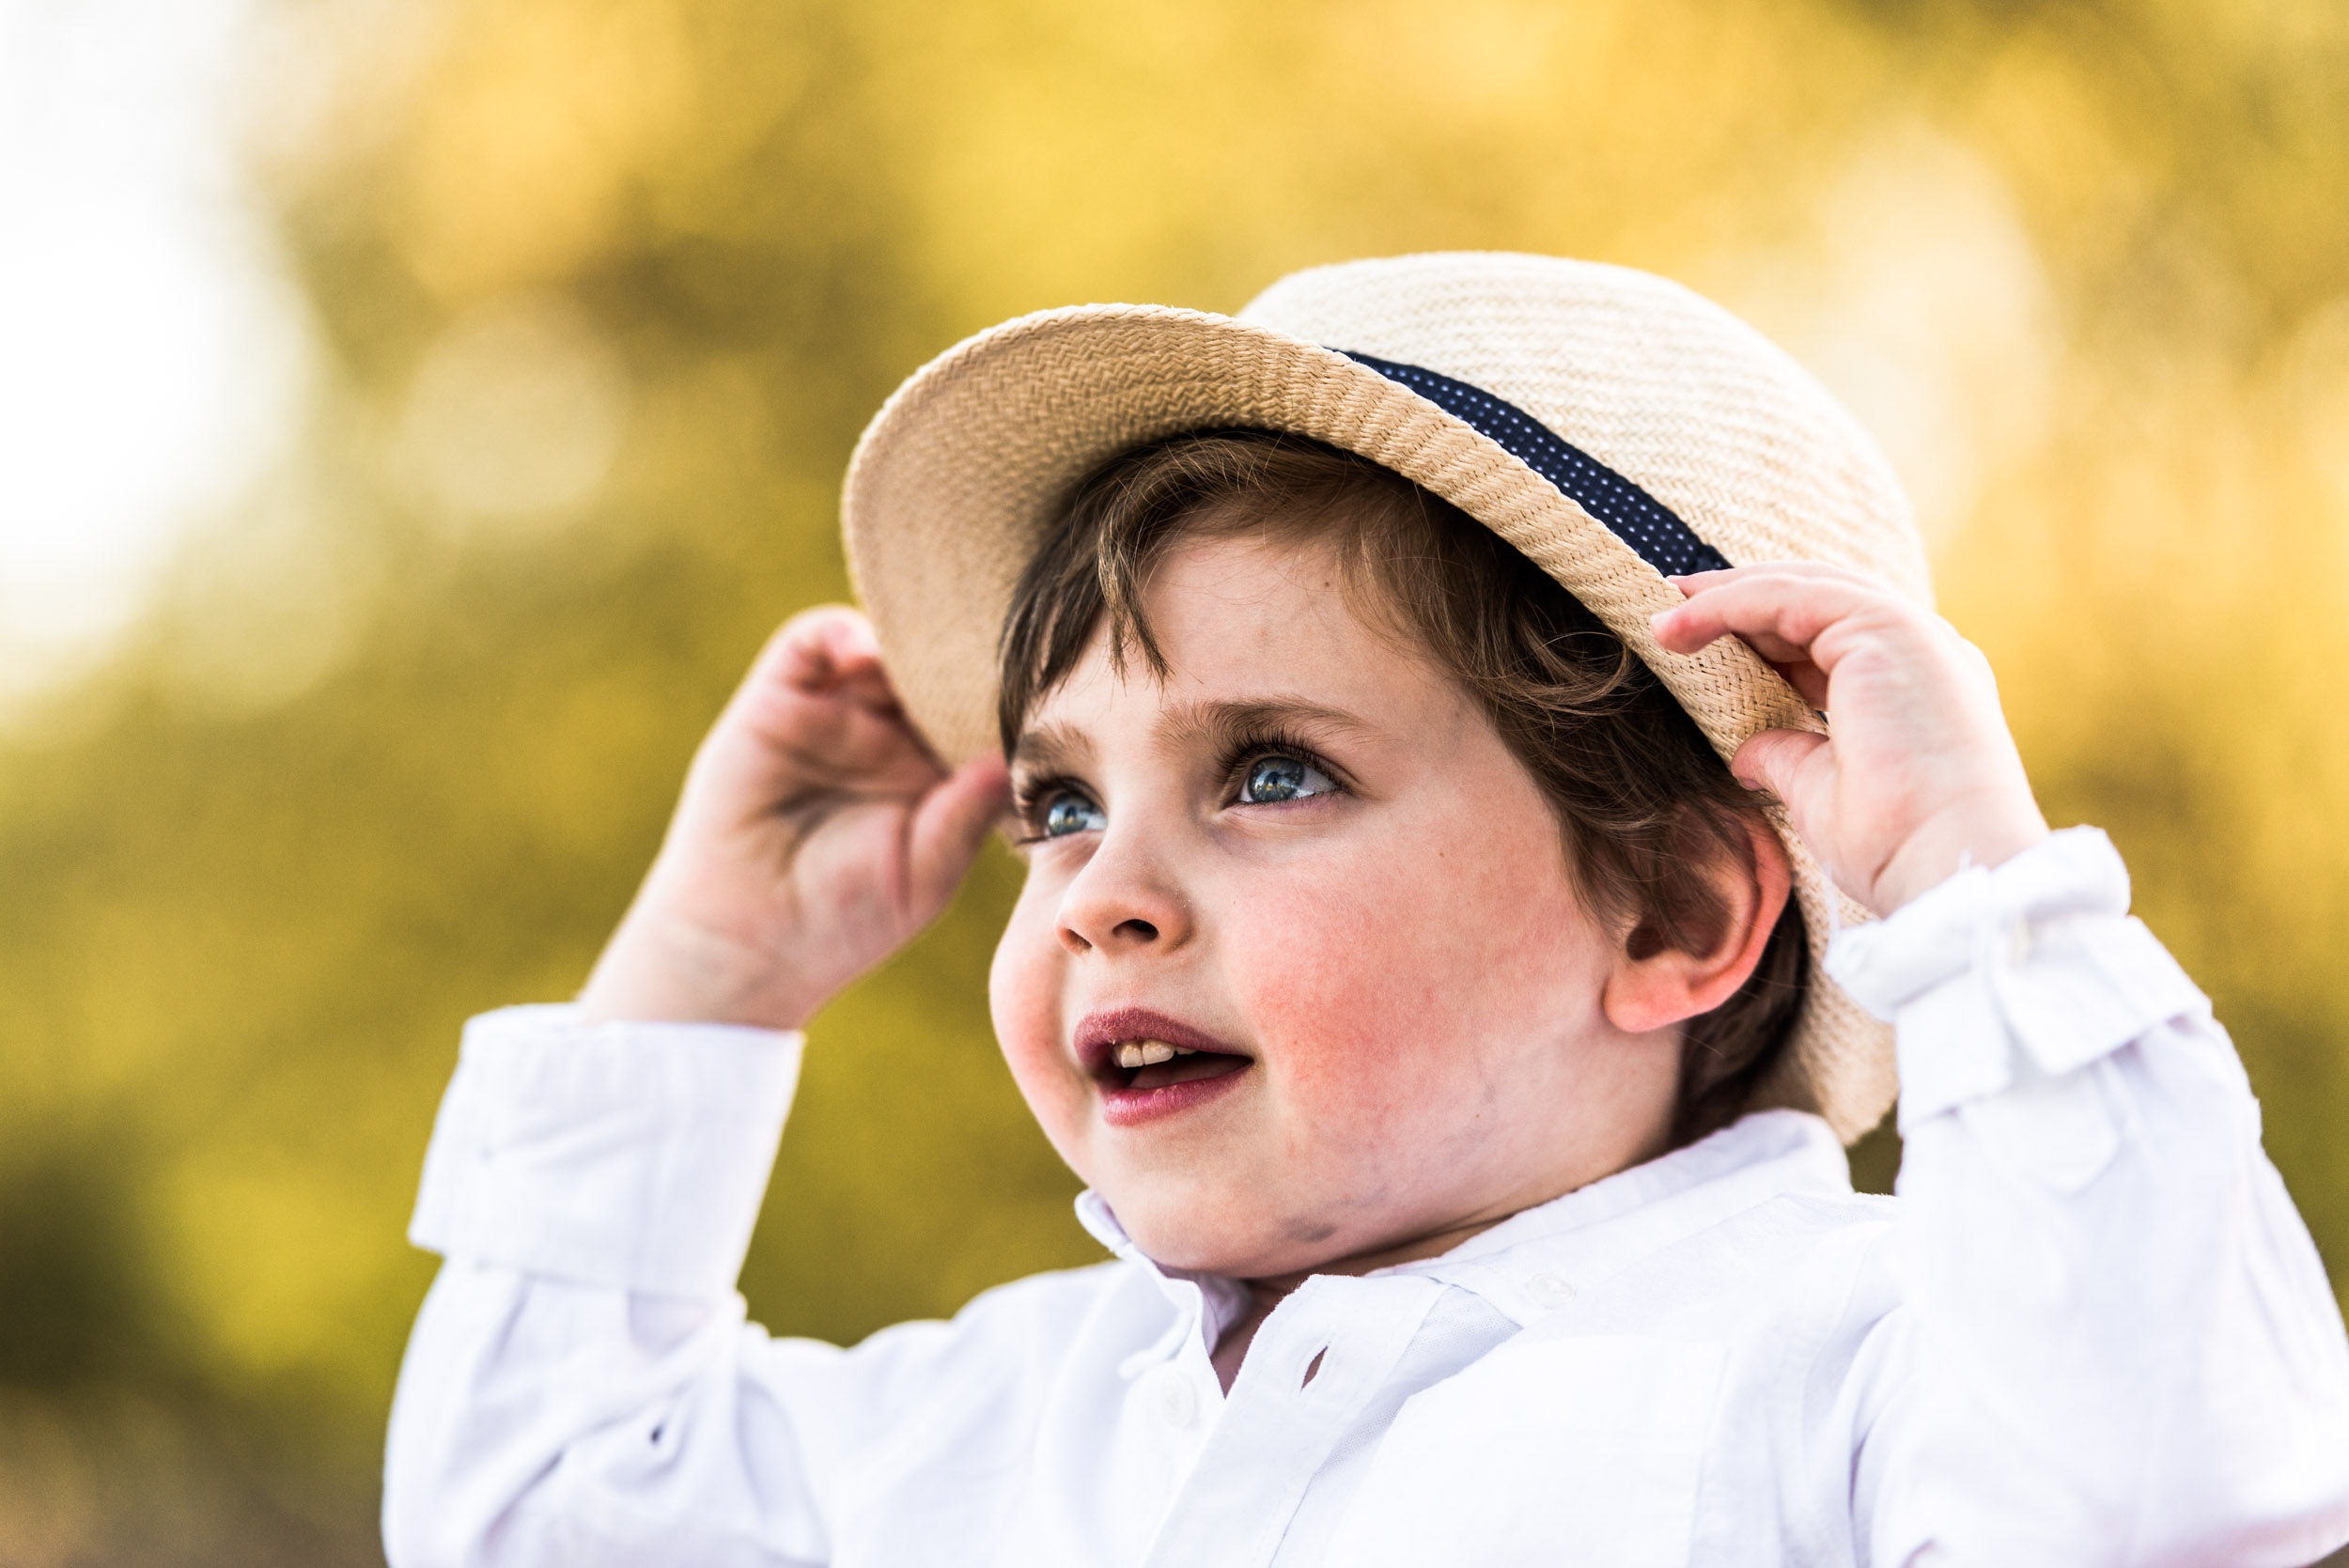 lisa hu chen orange county lifestyle photographer | sonoma california outdoor family session | blair thurston boutique retreat for photographers | little boy in cute hat